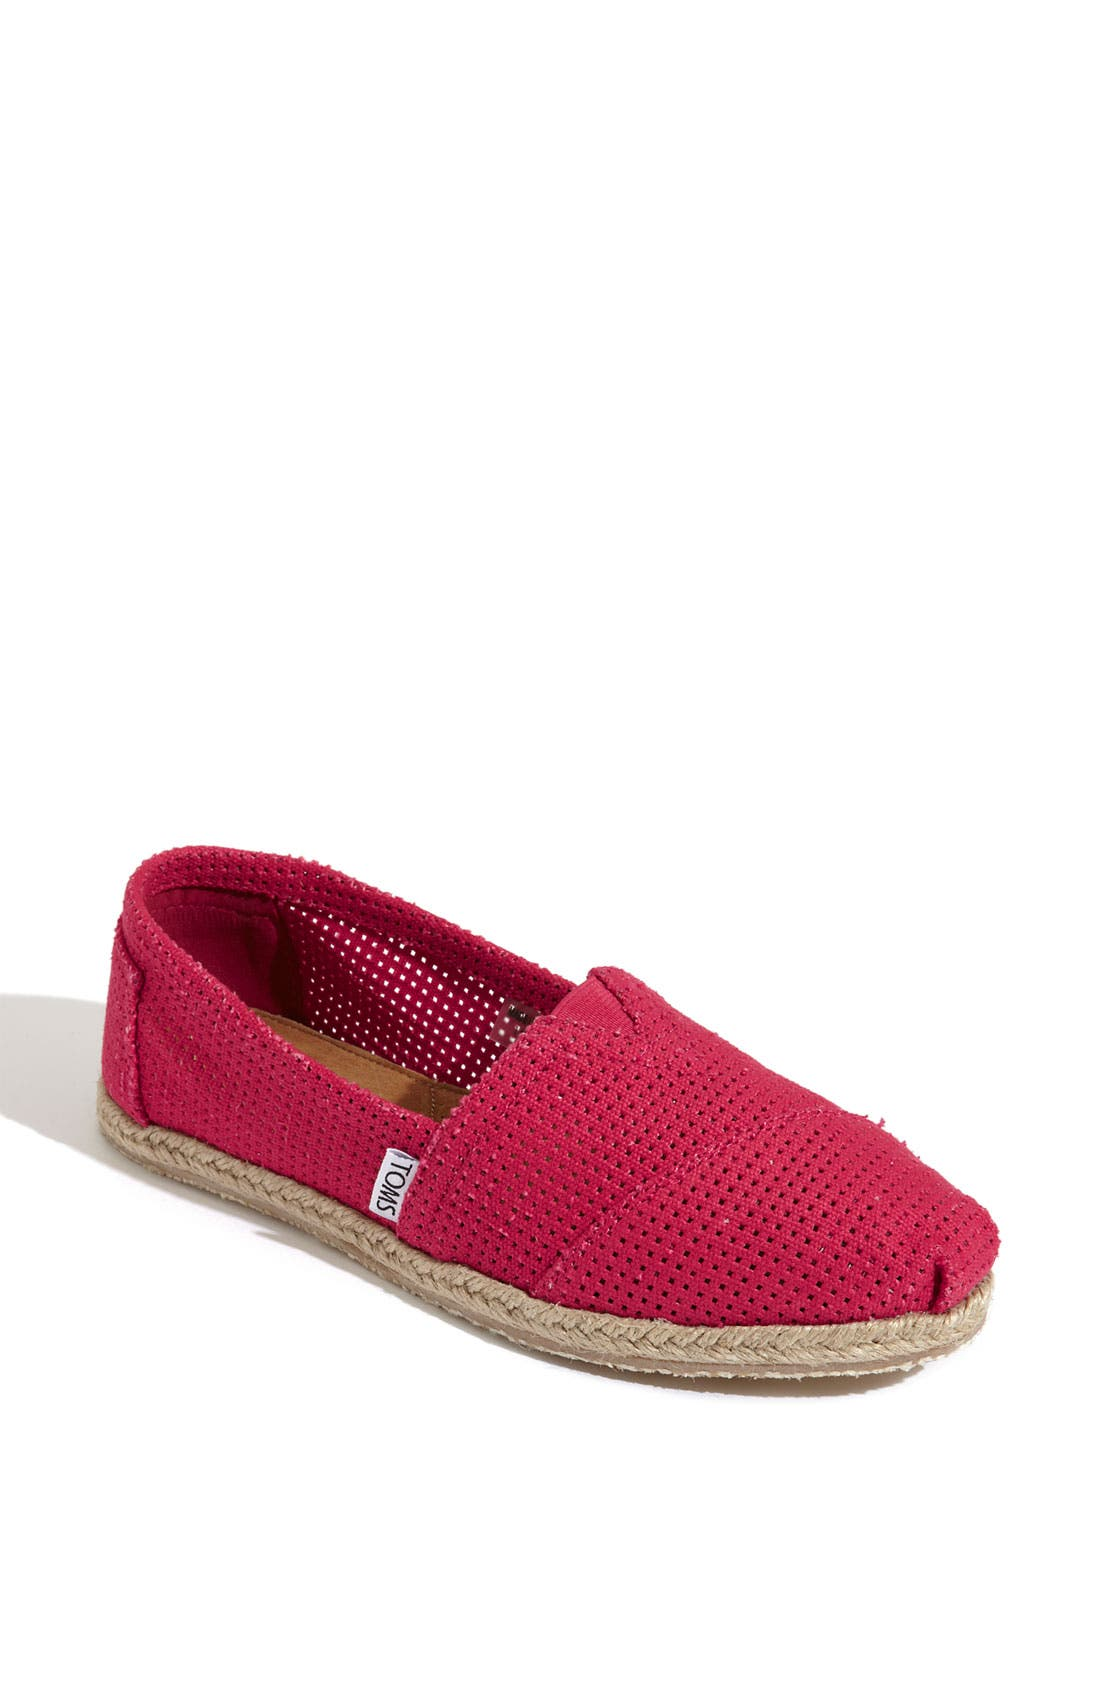 Main Image - TOMS 'Freetown - Classic' Espadrille Slip-On (Women)